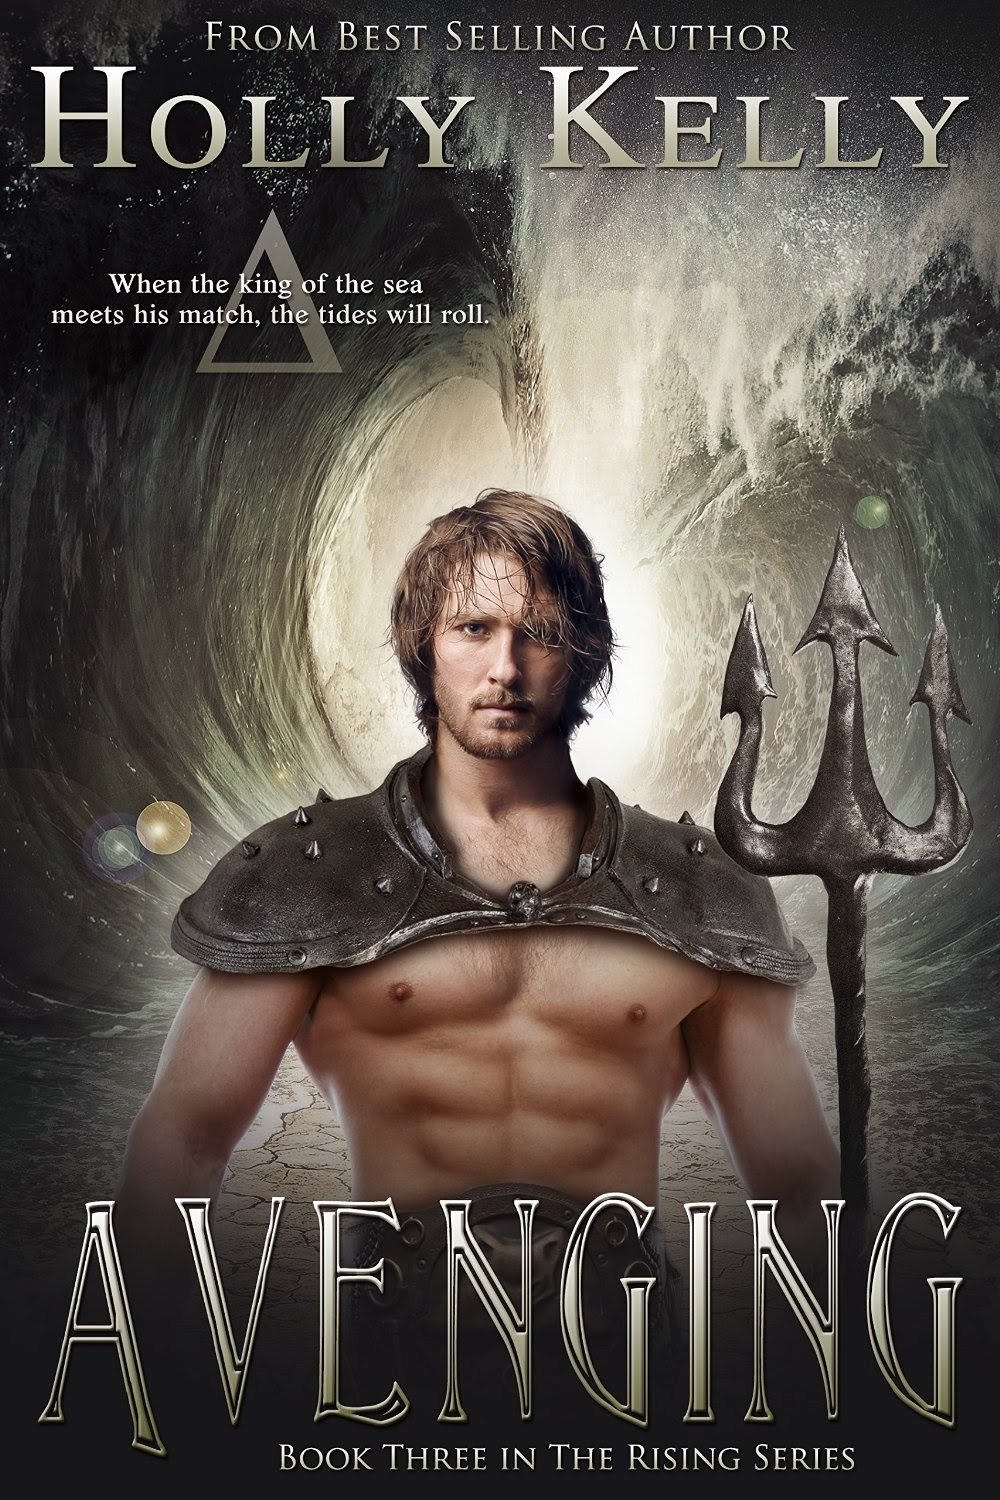 http://www.amazon.com/Avenging-Rising-Book-Holly-Kelly-ebook/dp/B00U4BSXS6/ref=asap_bc?ie=UTF8